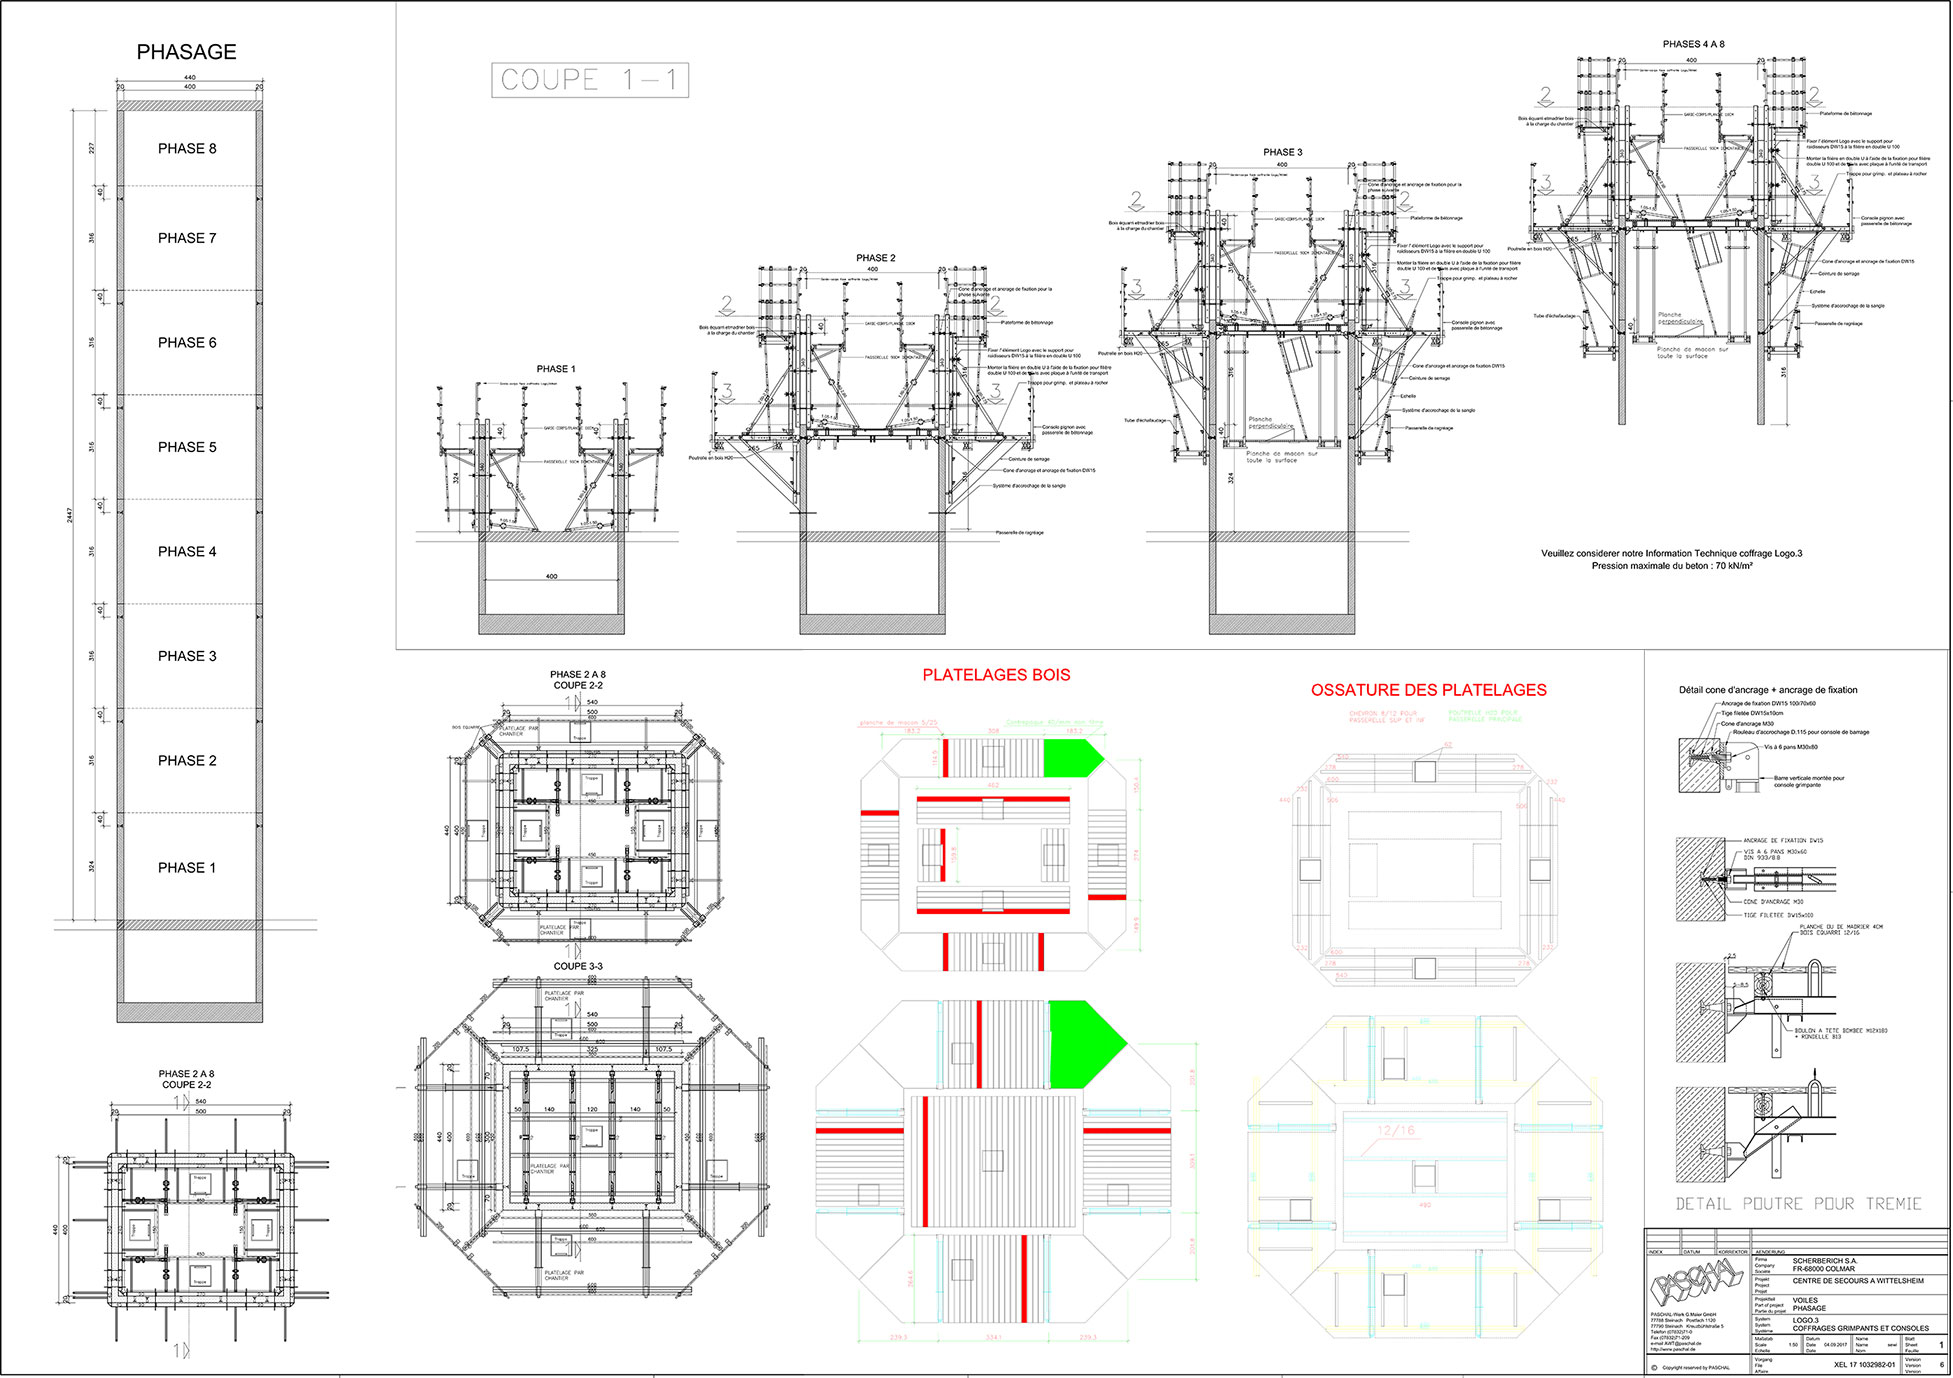 Detailed formwork planning with PASCHAL-Plan pro